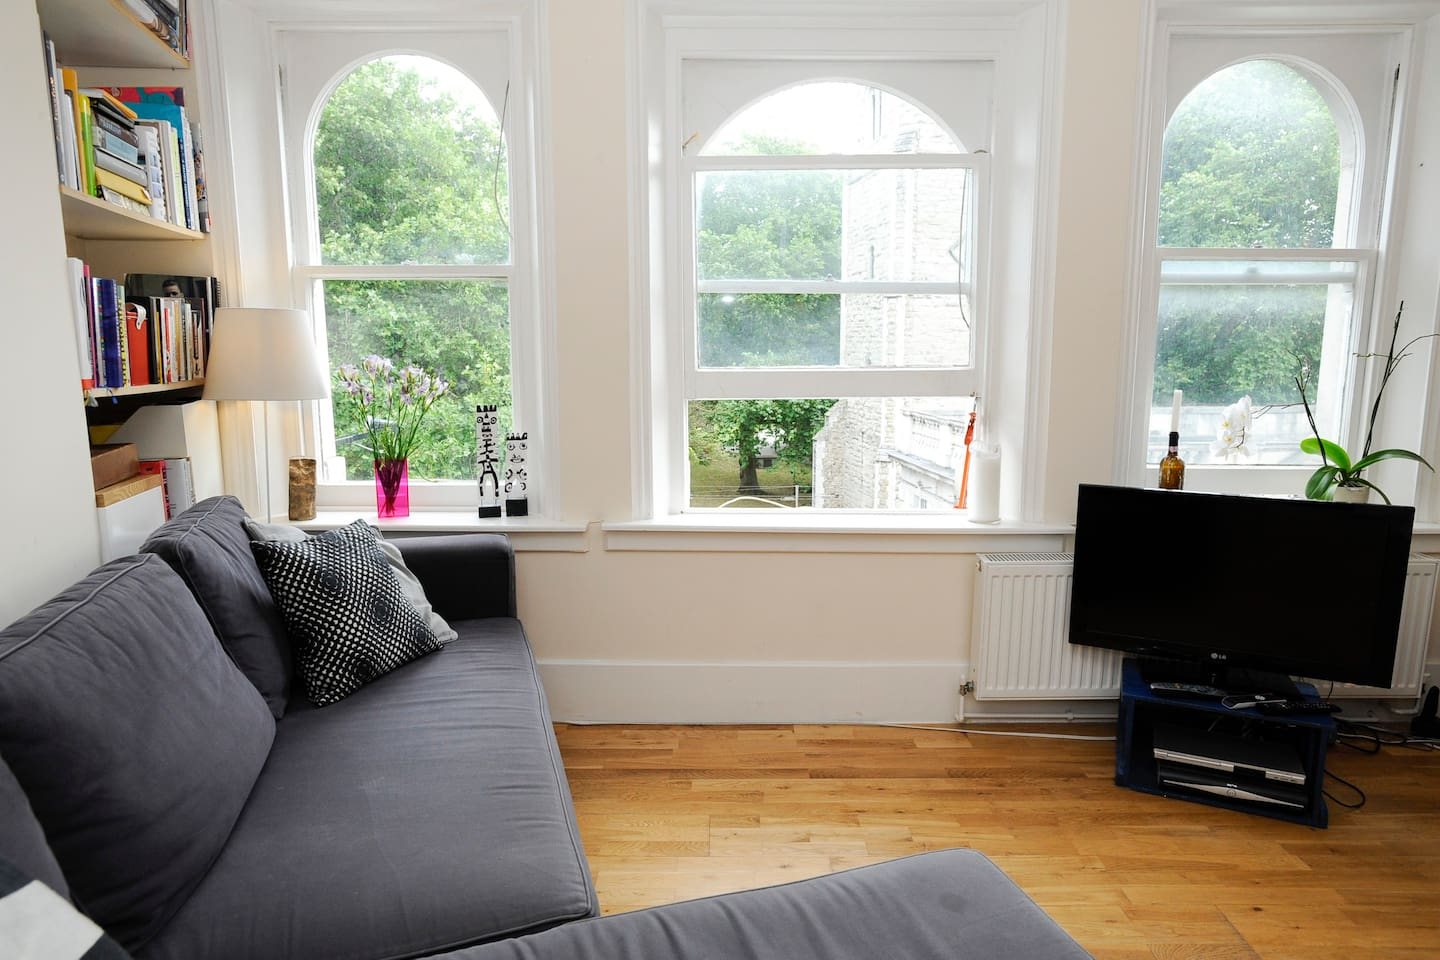 Living room with comfy sofa bed overlooking a cute little park